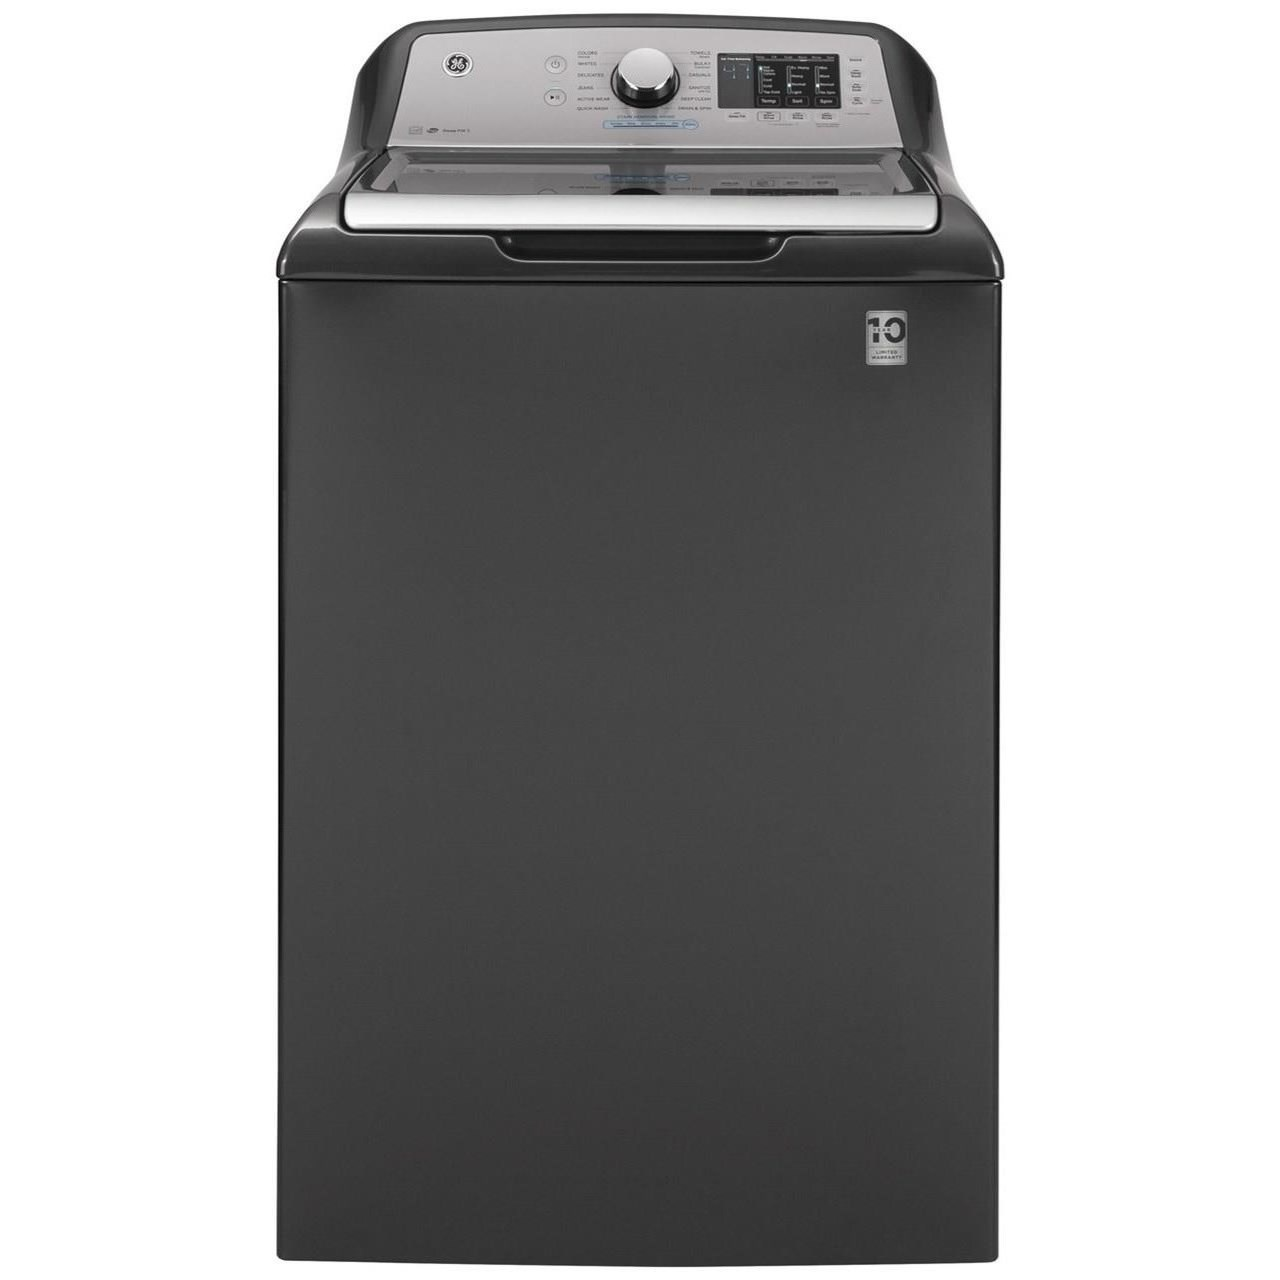 Home Laundry GE® 4.8 cu. ft. Capacity Washer by GE Appliances at Westrich Furniture & Appliances